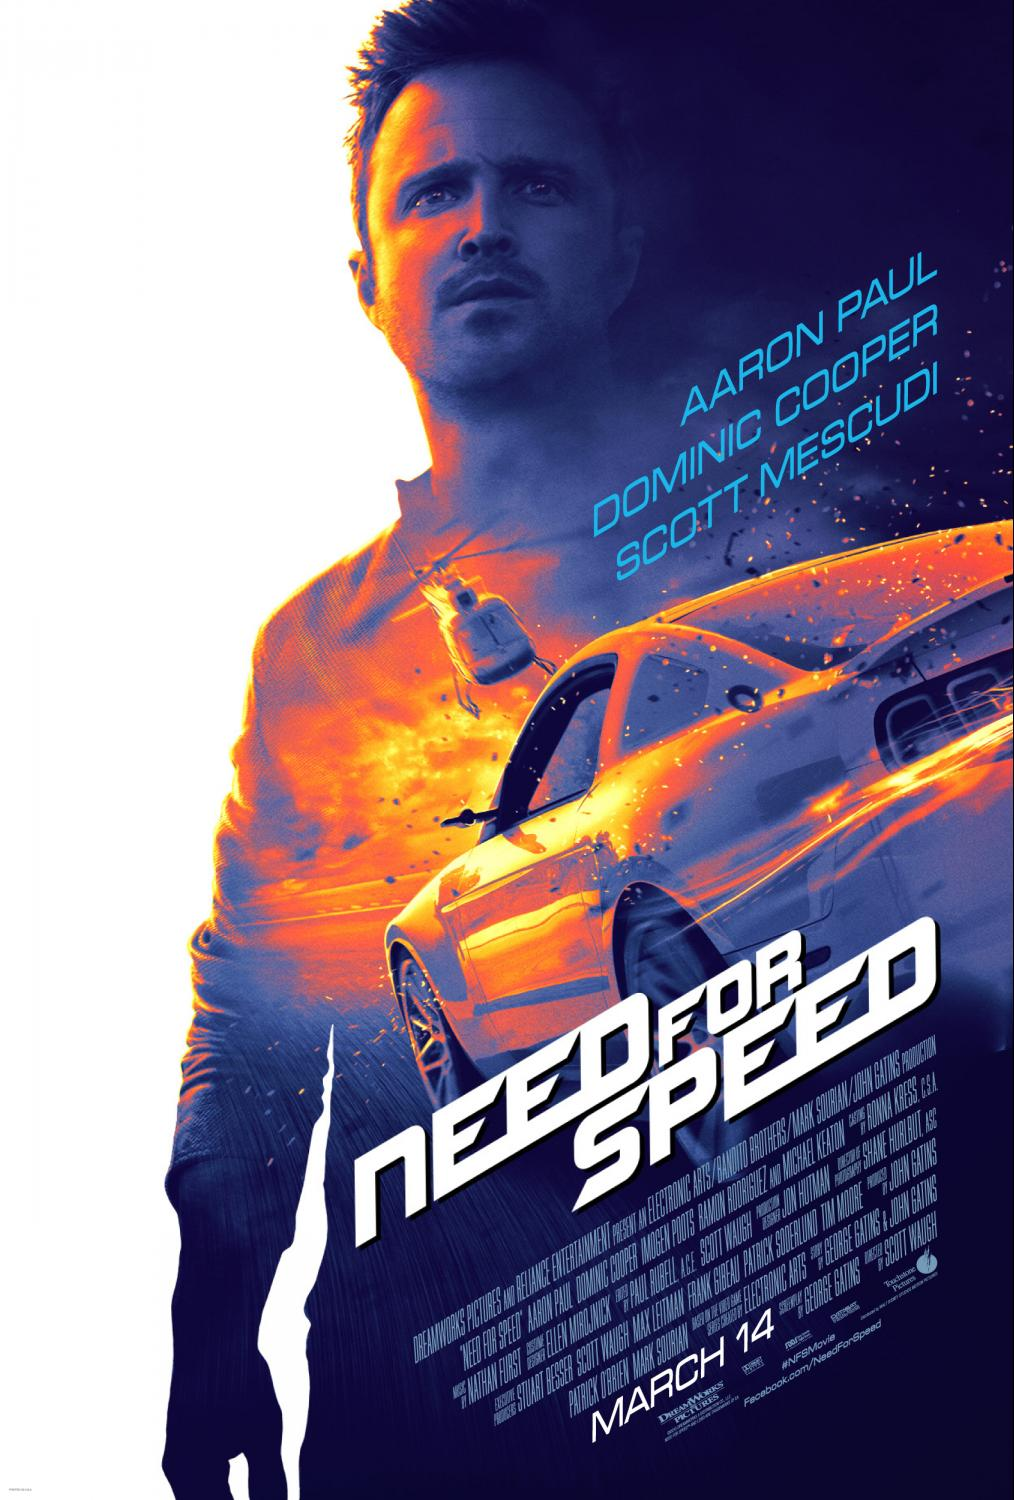 Need for Speed Gains Traction with New Intro Featurette